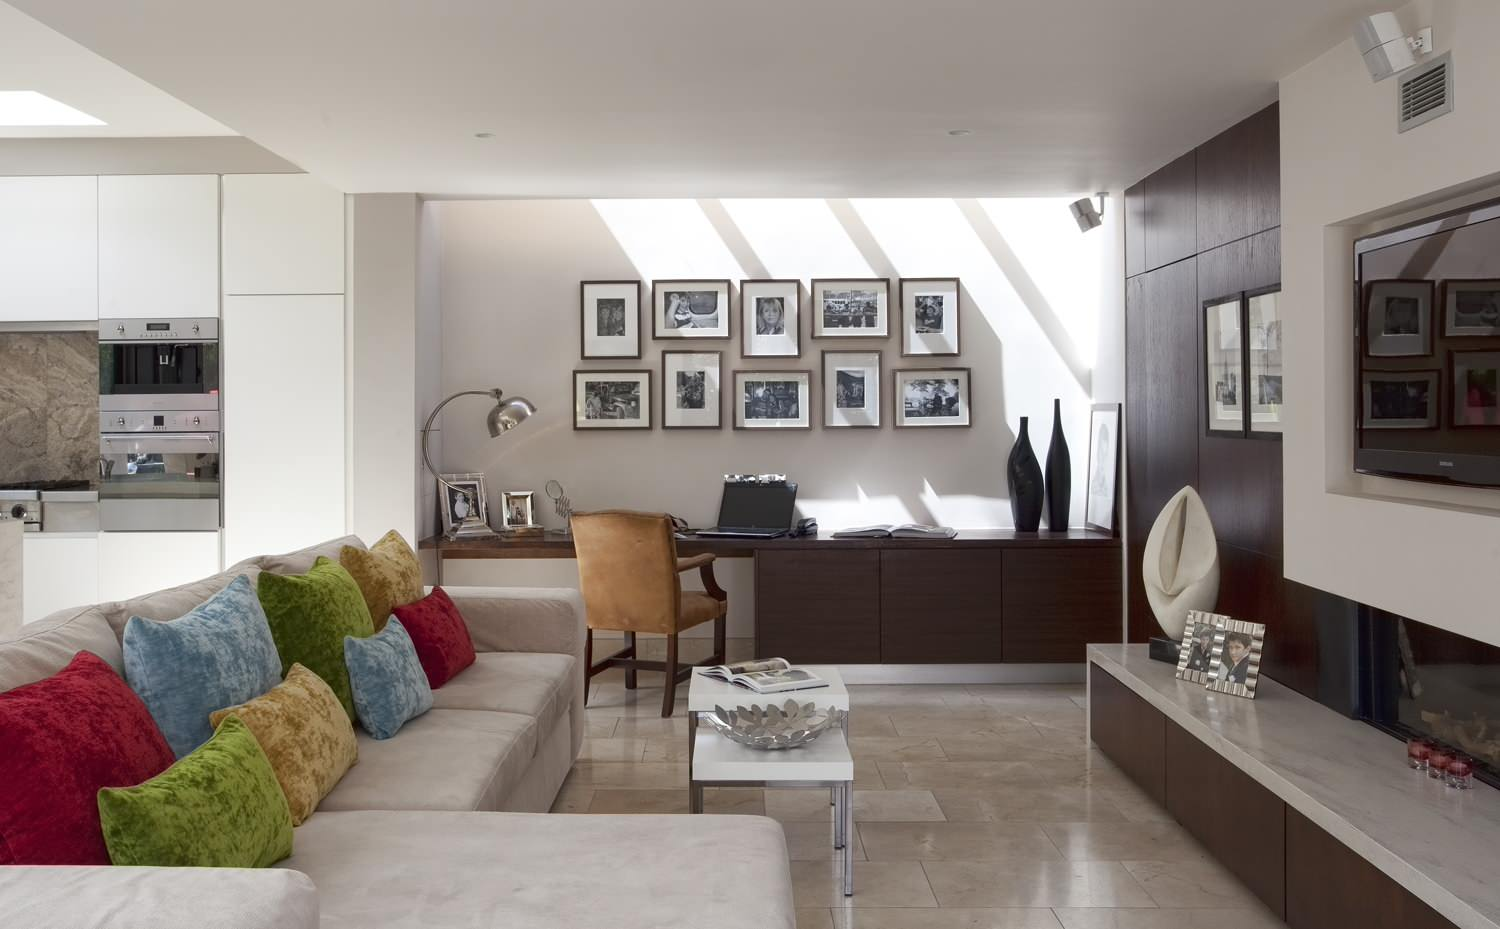 Tan Couch Ideas Houzz These ideas include classic couches, colorful decor, stunning coffee the beige patterned rug in this living room ties the room together nicely. tan couch ideas houzz